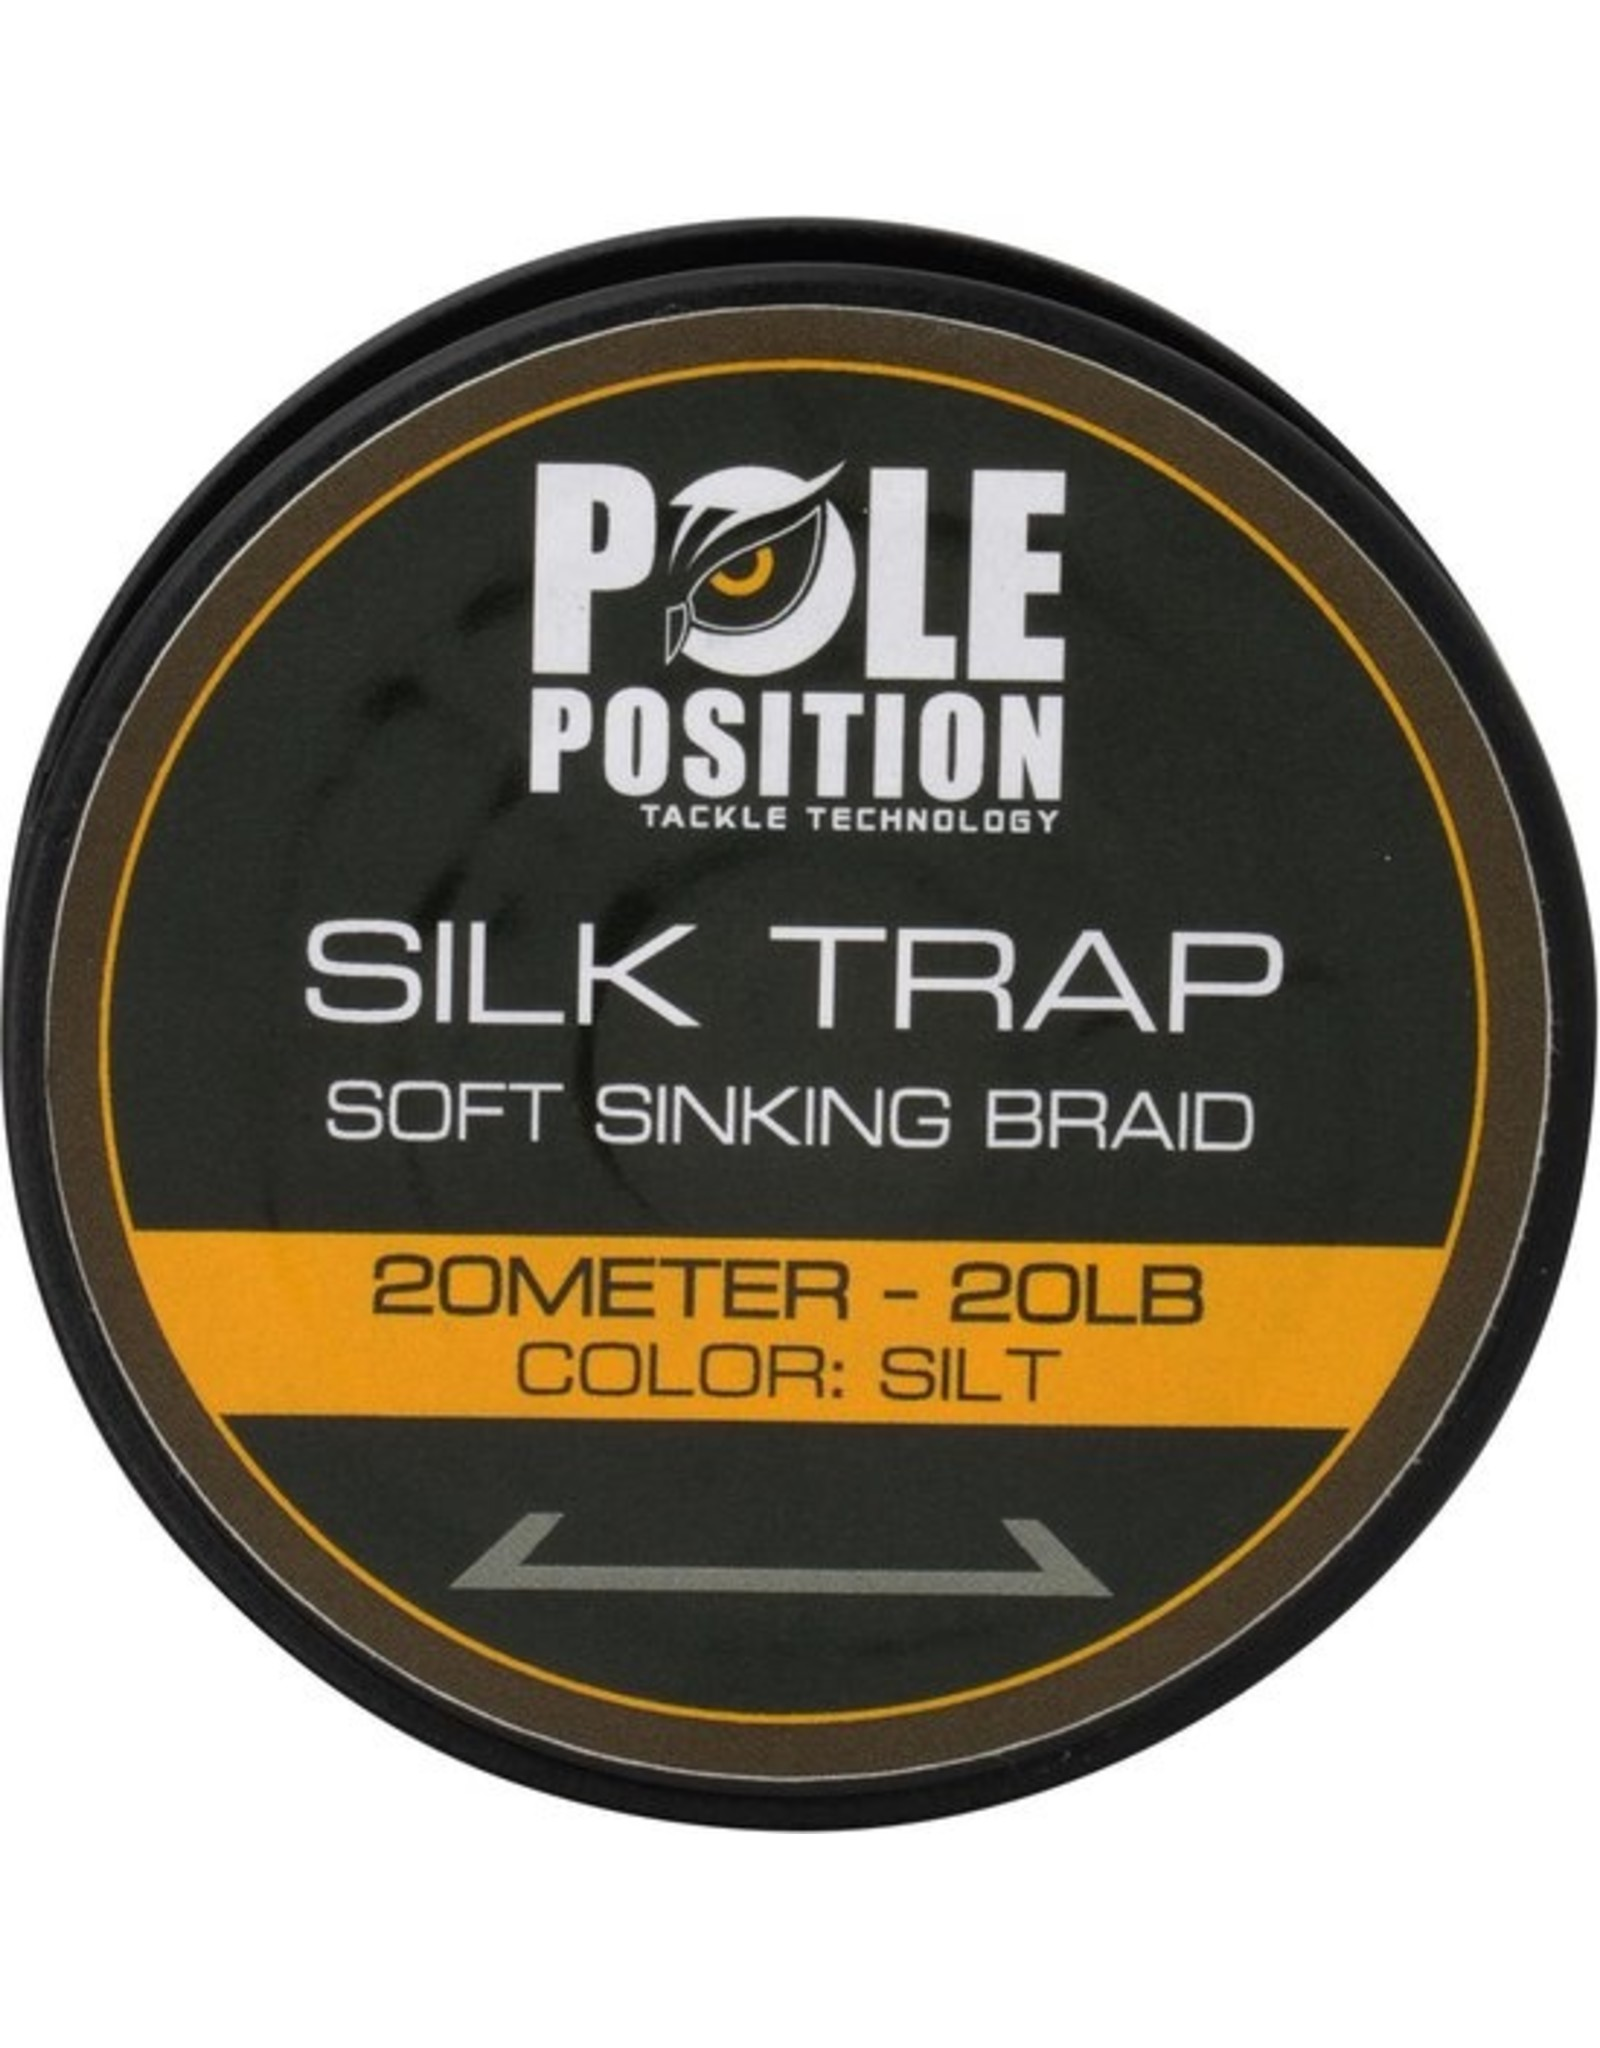 STRTG Pole Position Silk Trap Sinking Braid